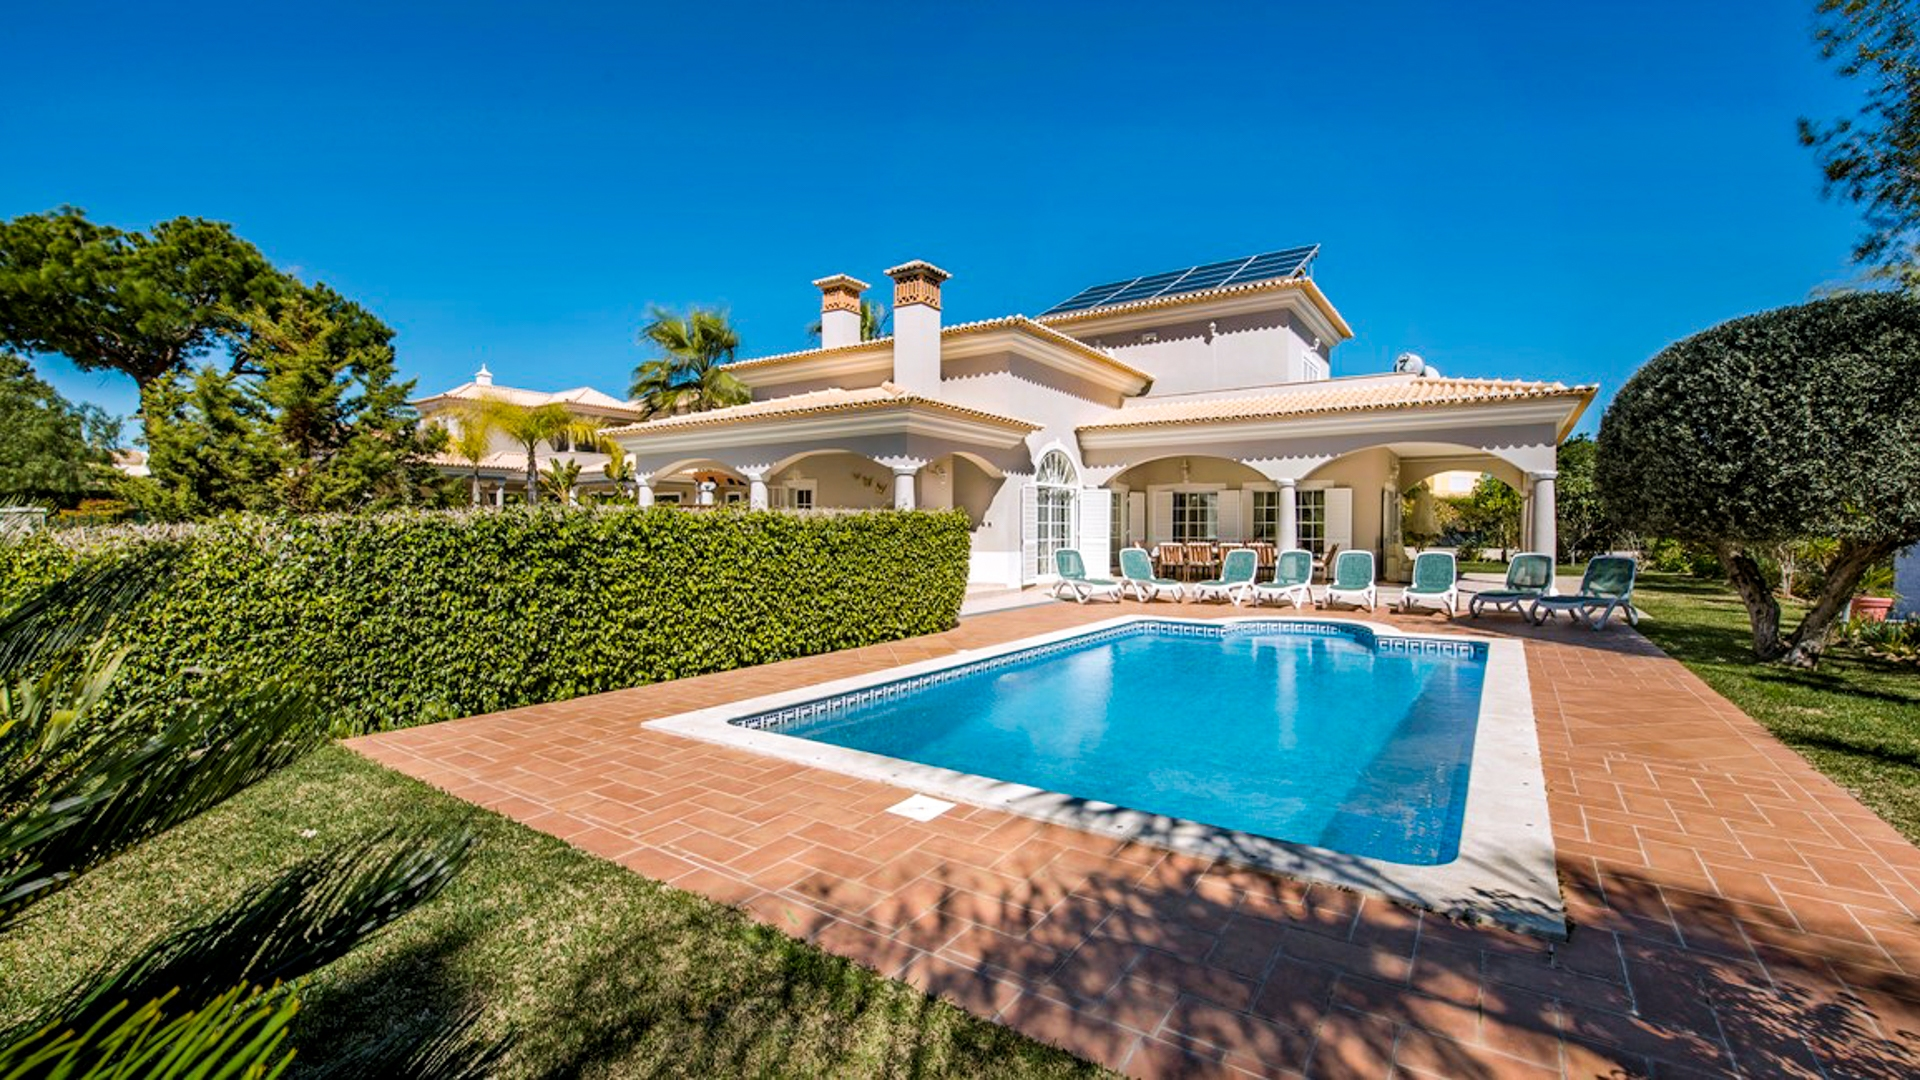 Modern 4 Bedroom Villa on Golf Condominium near Vilamoura | PMR328 An attractive and well-maintained villa used as an investment property with an income from holiday and golf rentals